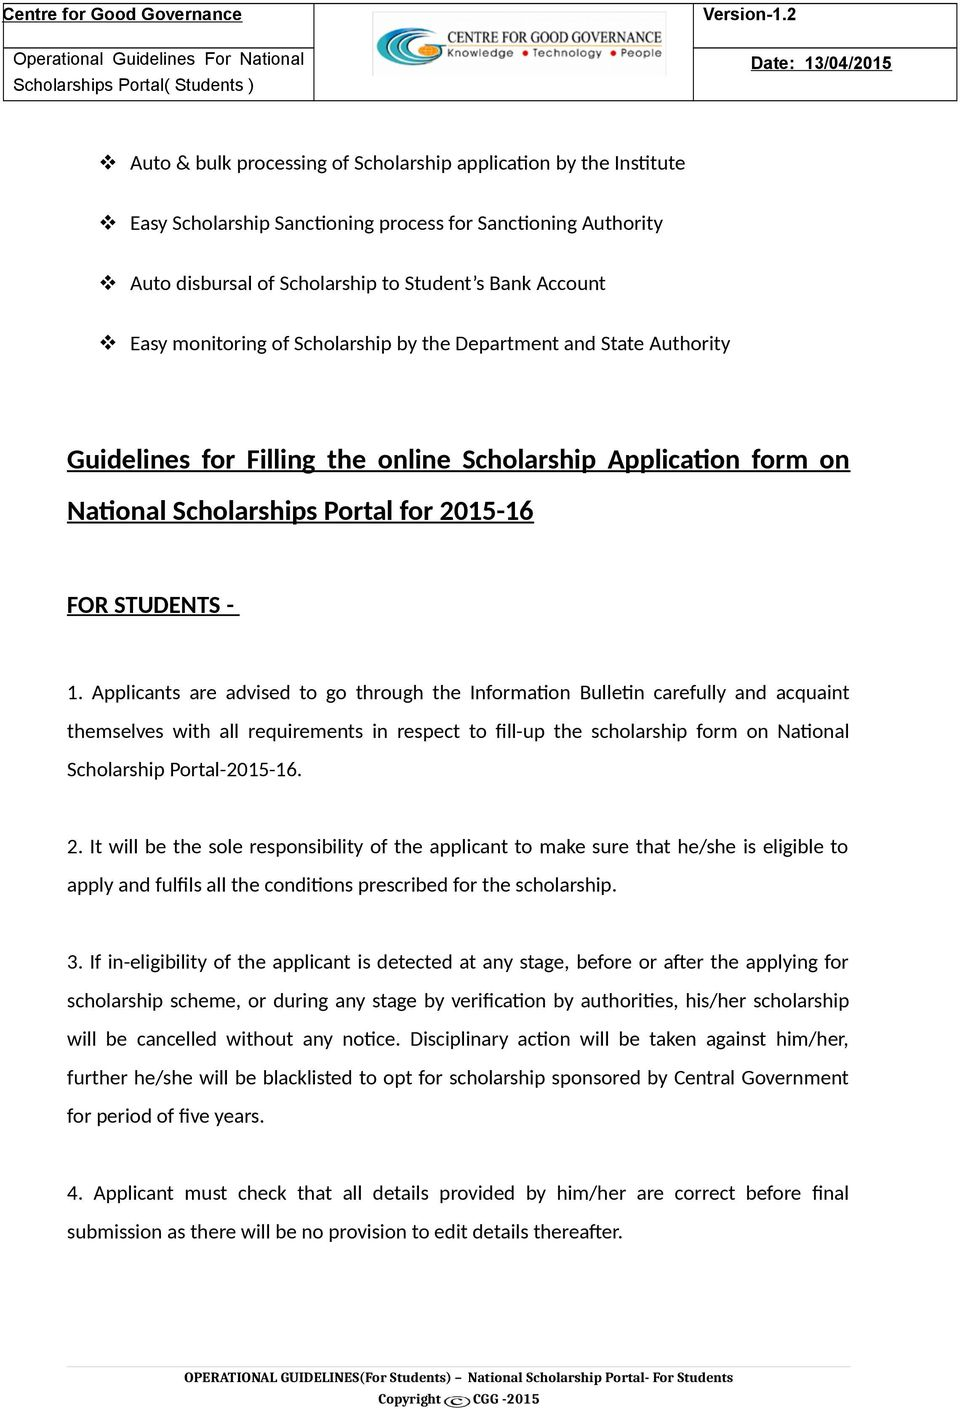 Applicants are advised to go through the Information Bulletin carefully and acquaint themselves with all requirements in respect to fill-up the scholarship form on National Scholarship Portal-2015-16.